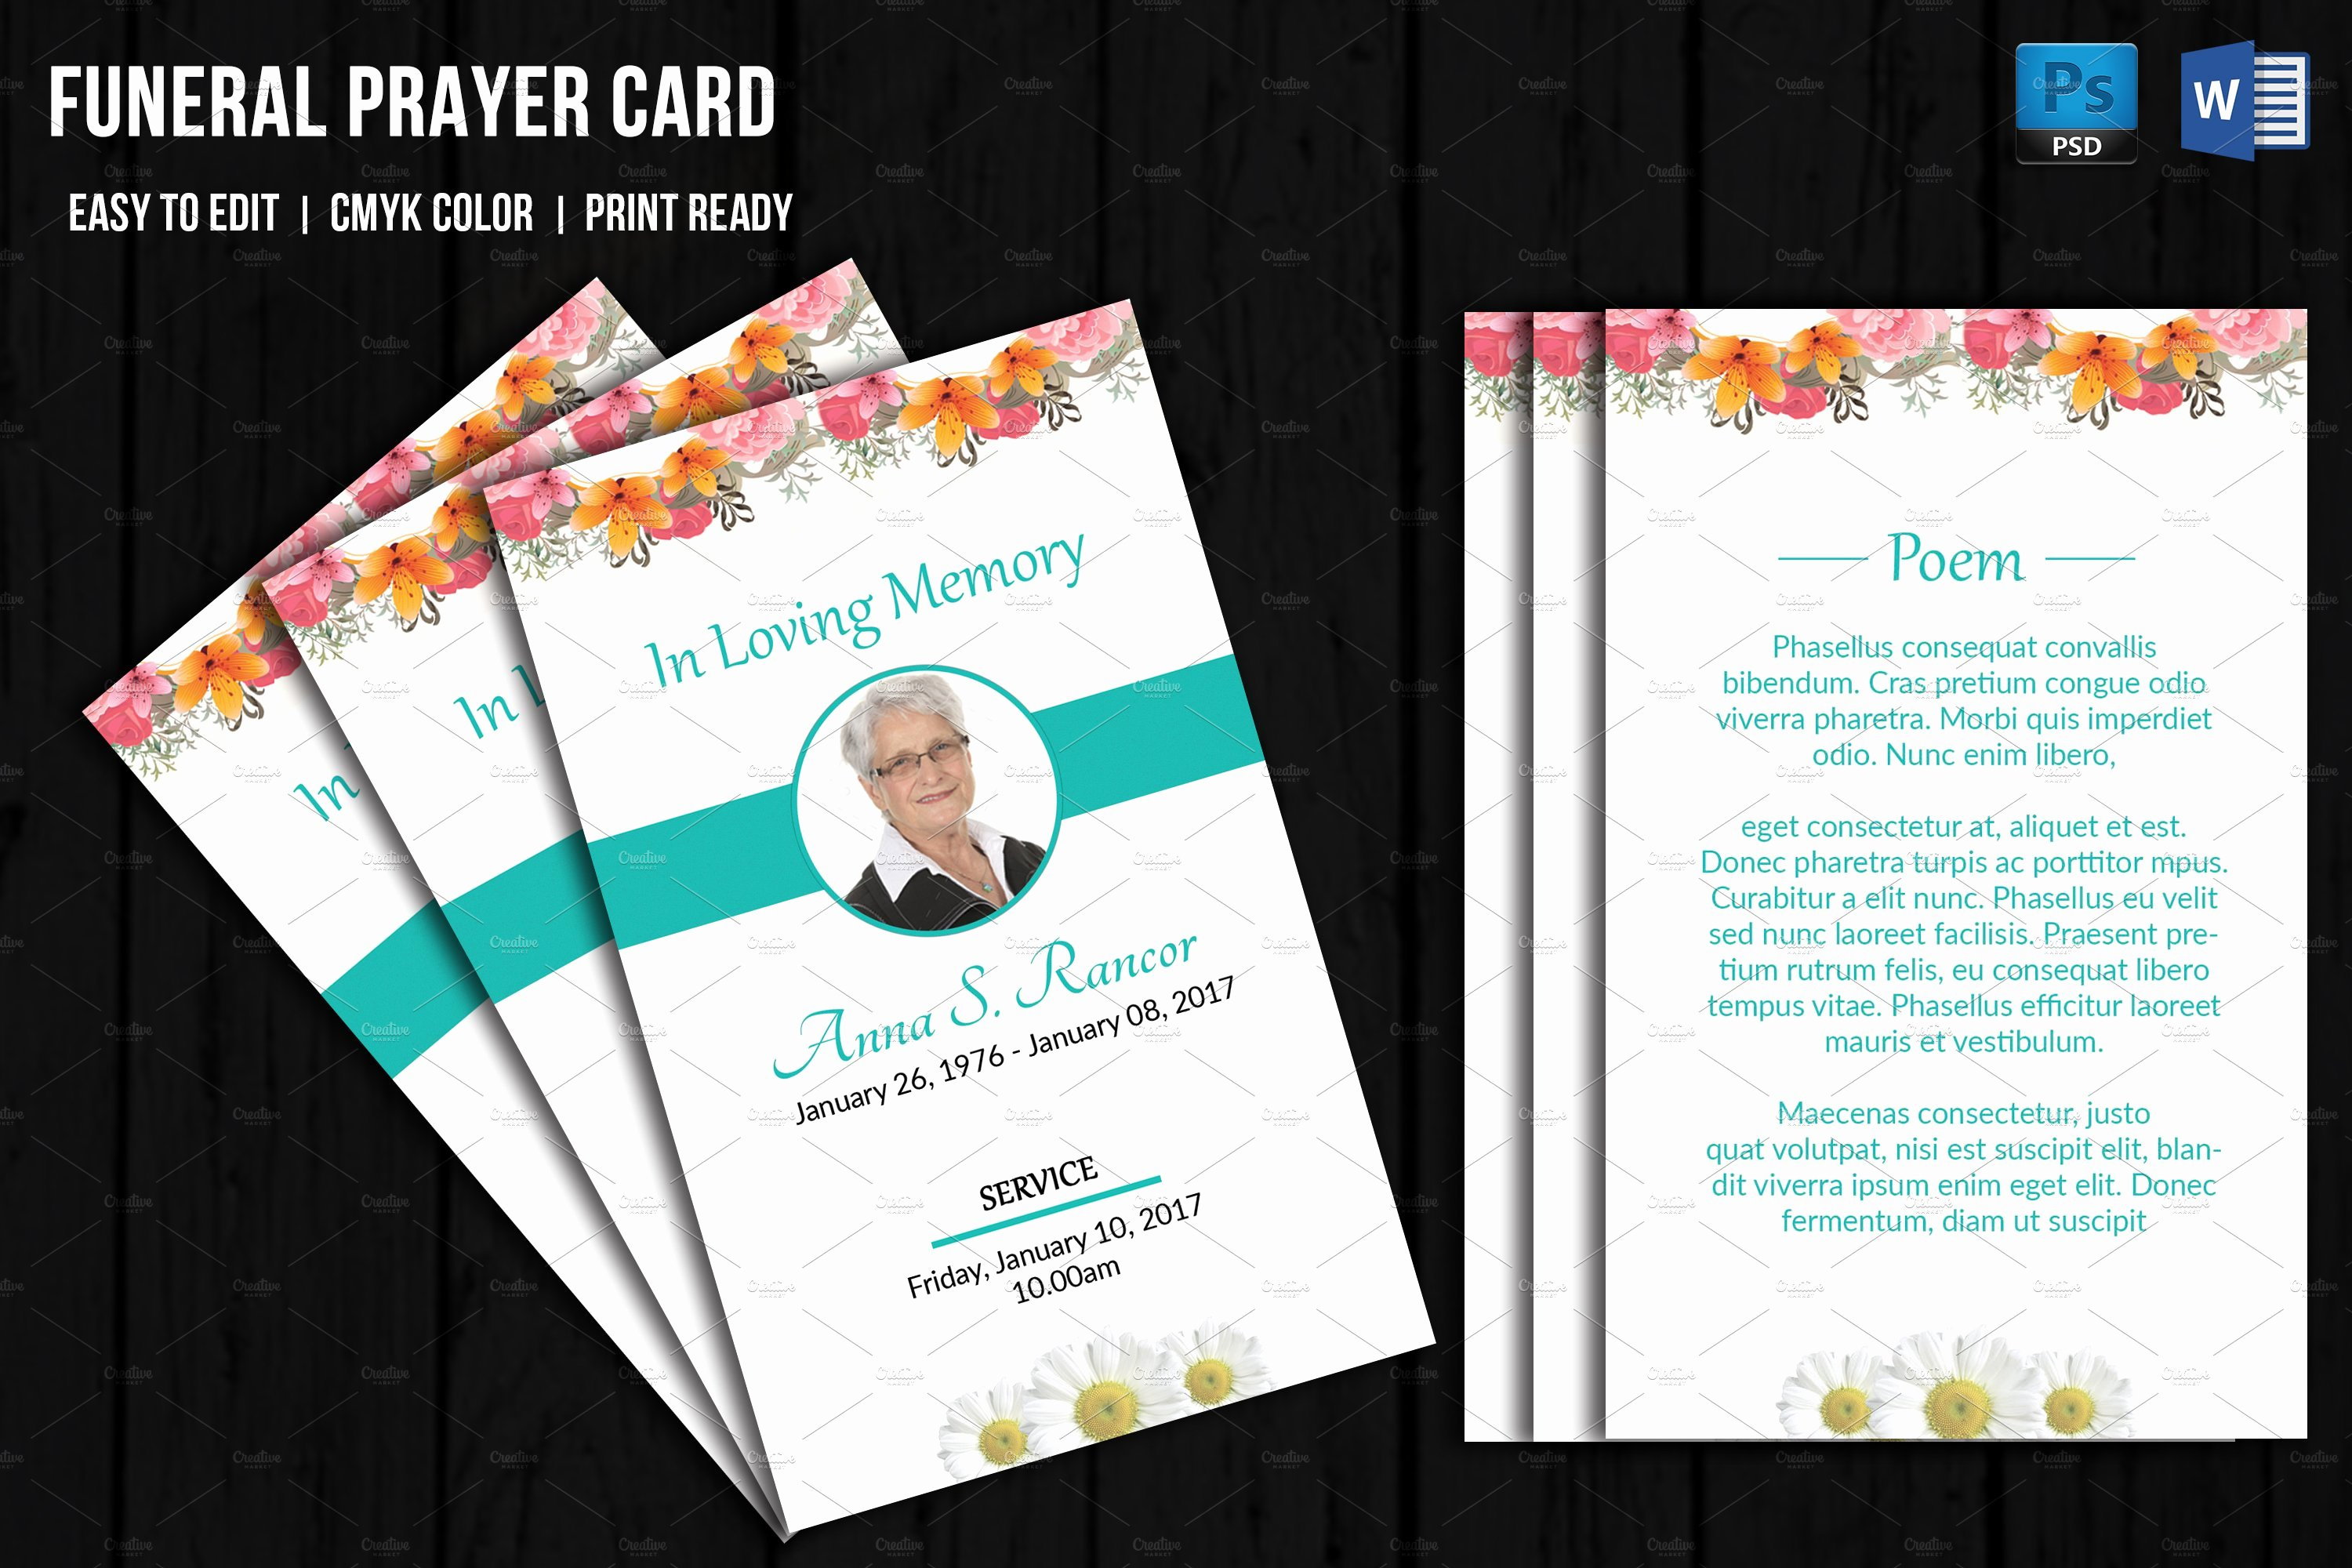 Prayer Card Templates Free Unique Funeral Prayer Card Template V656 Card Templates